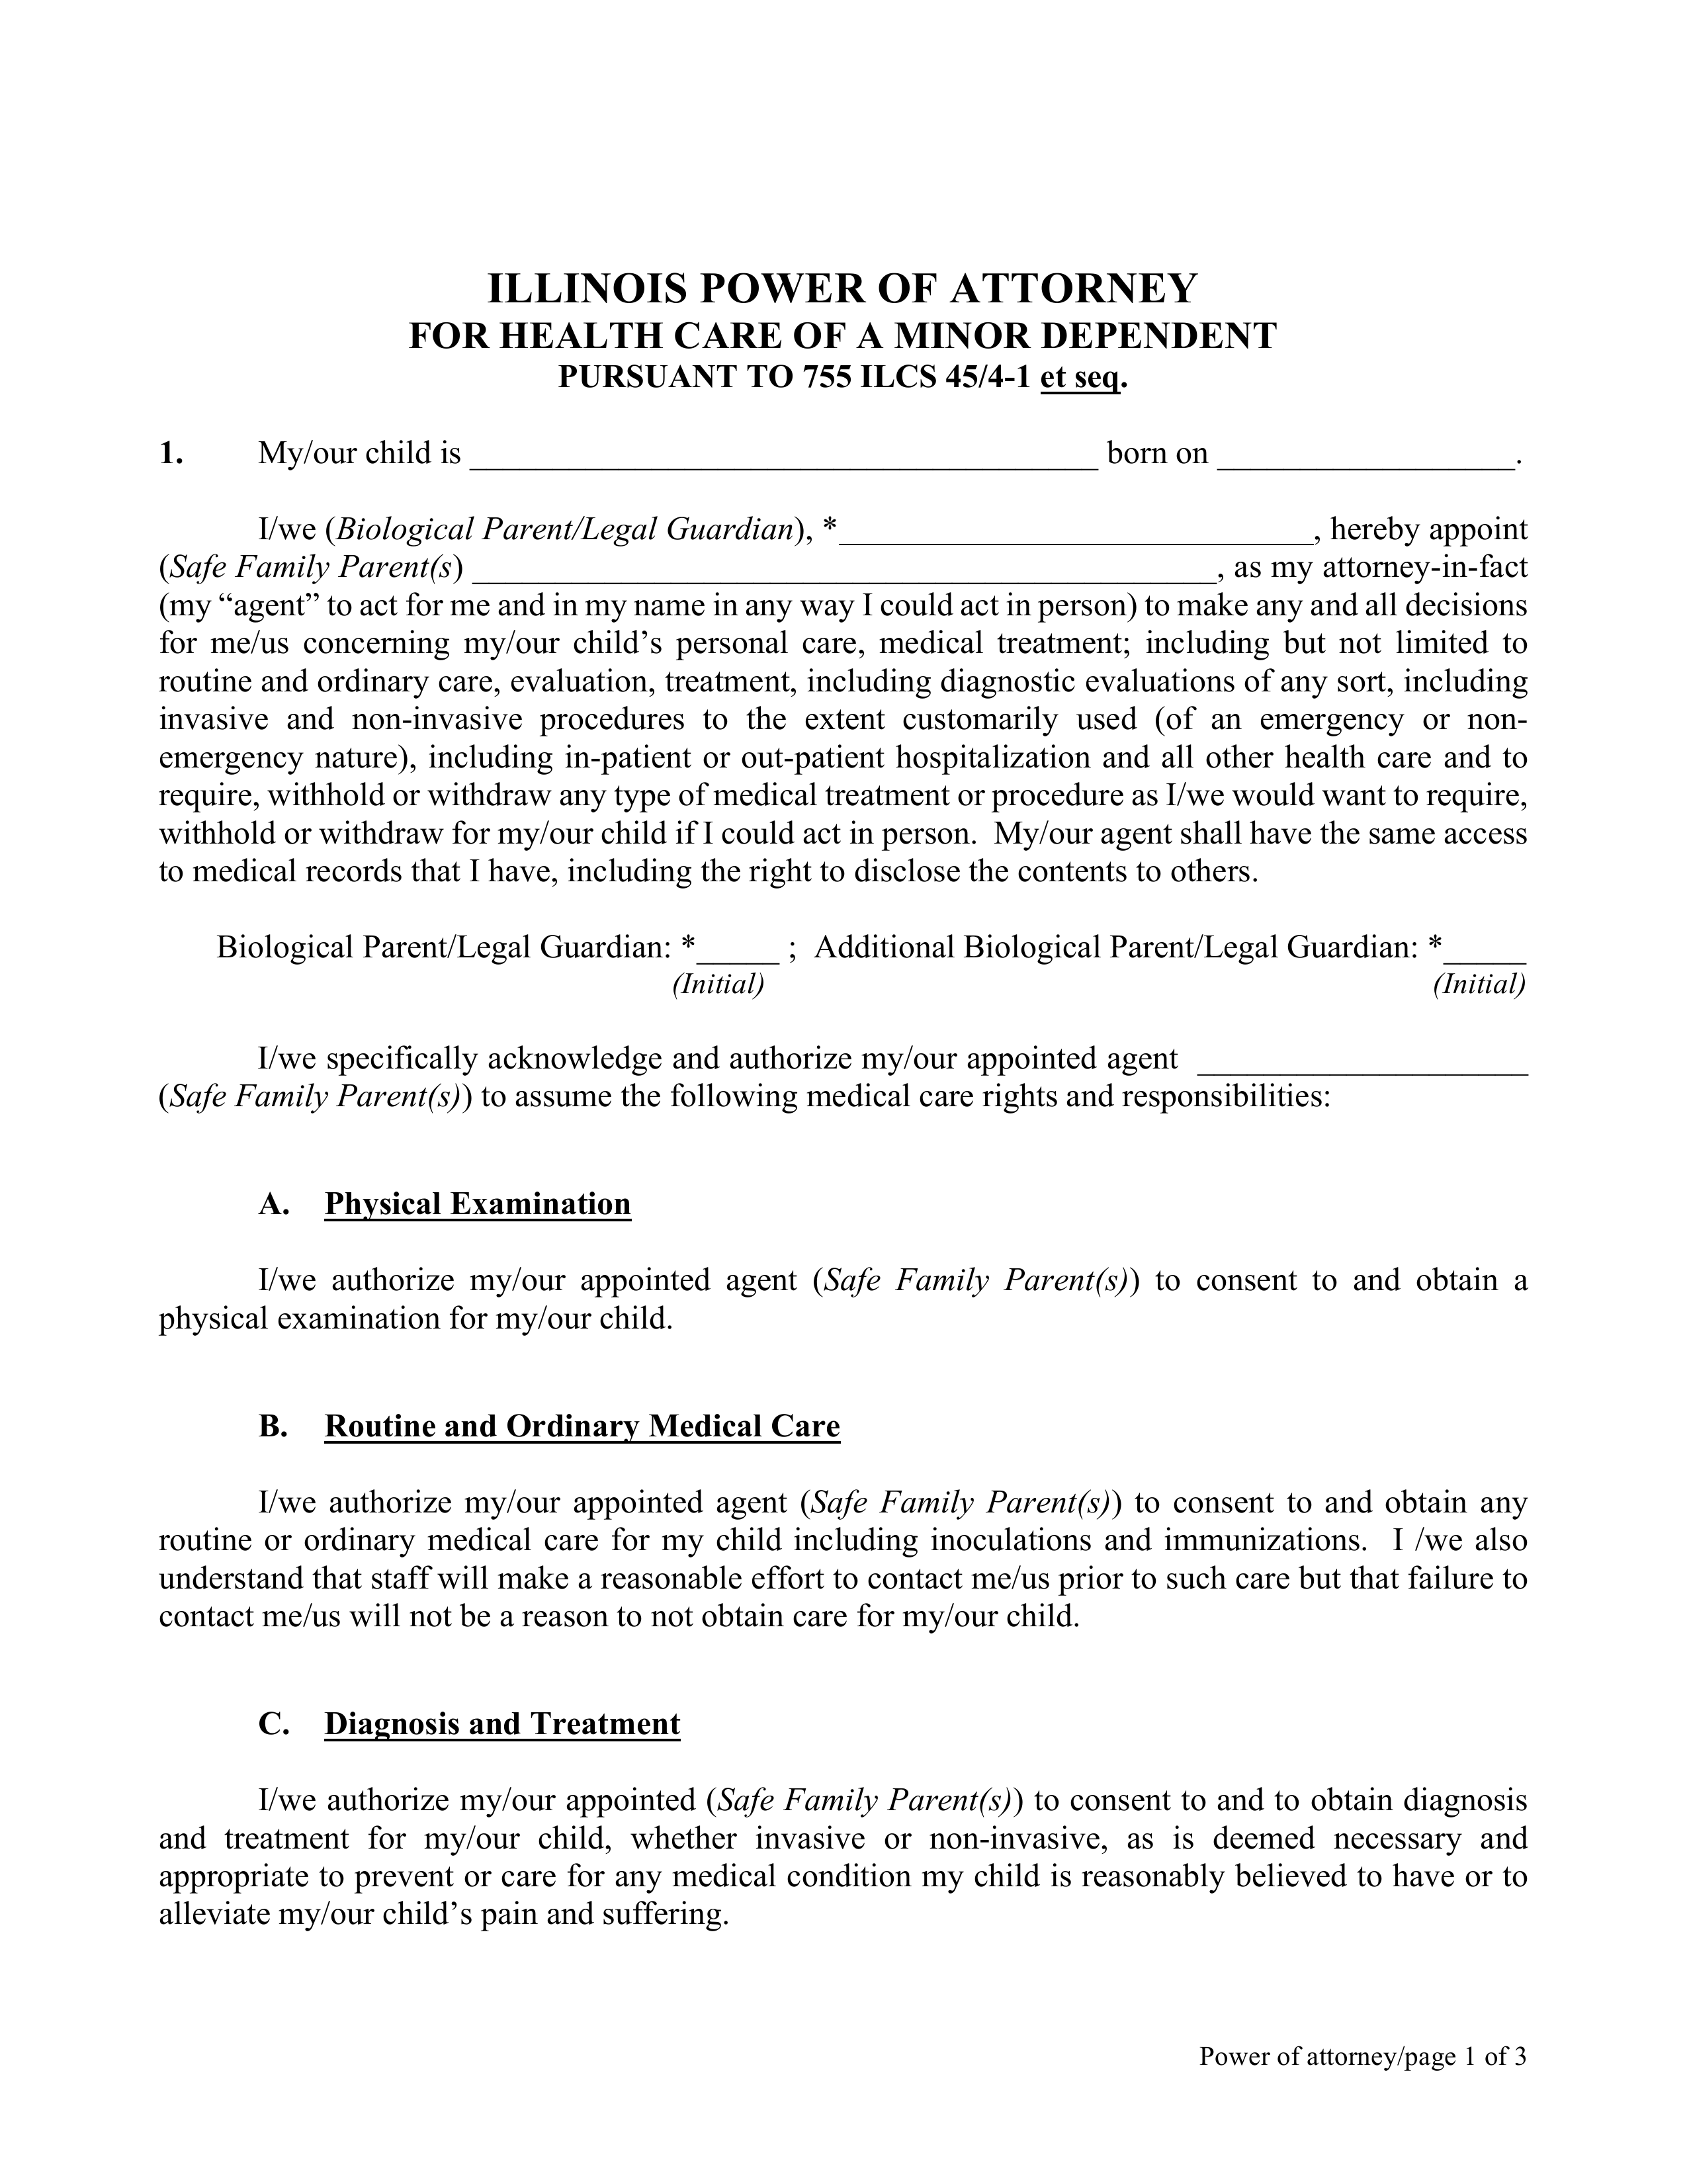 Free Illinois Power of Attorney for Minor Child Form - PDF